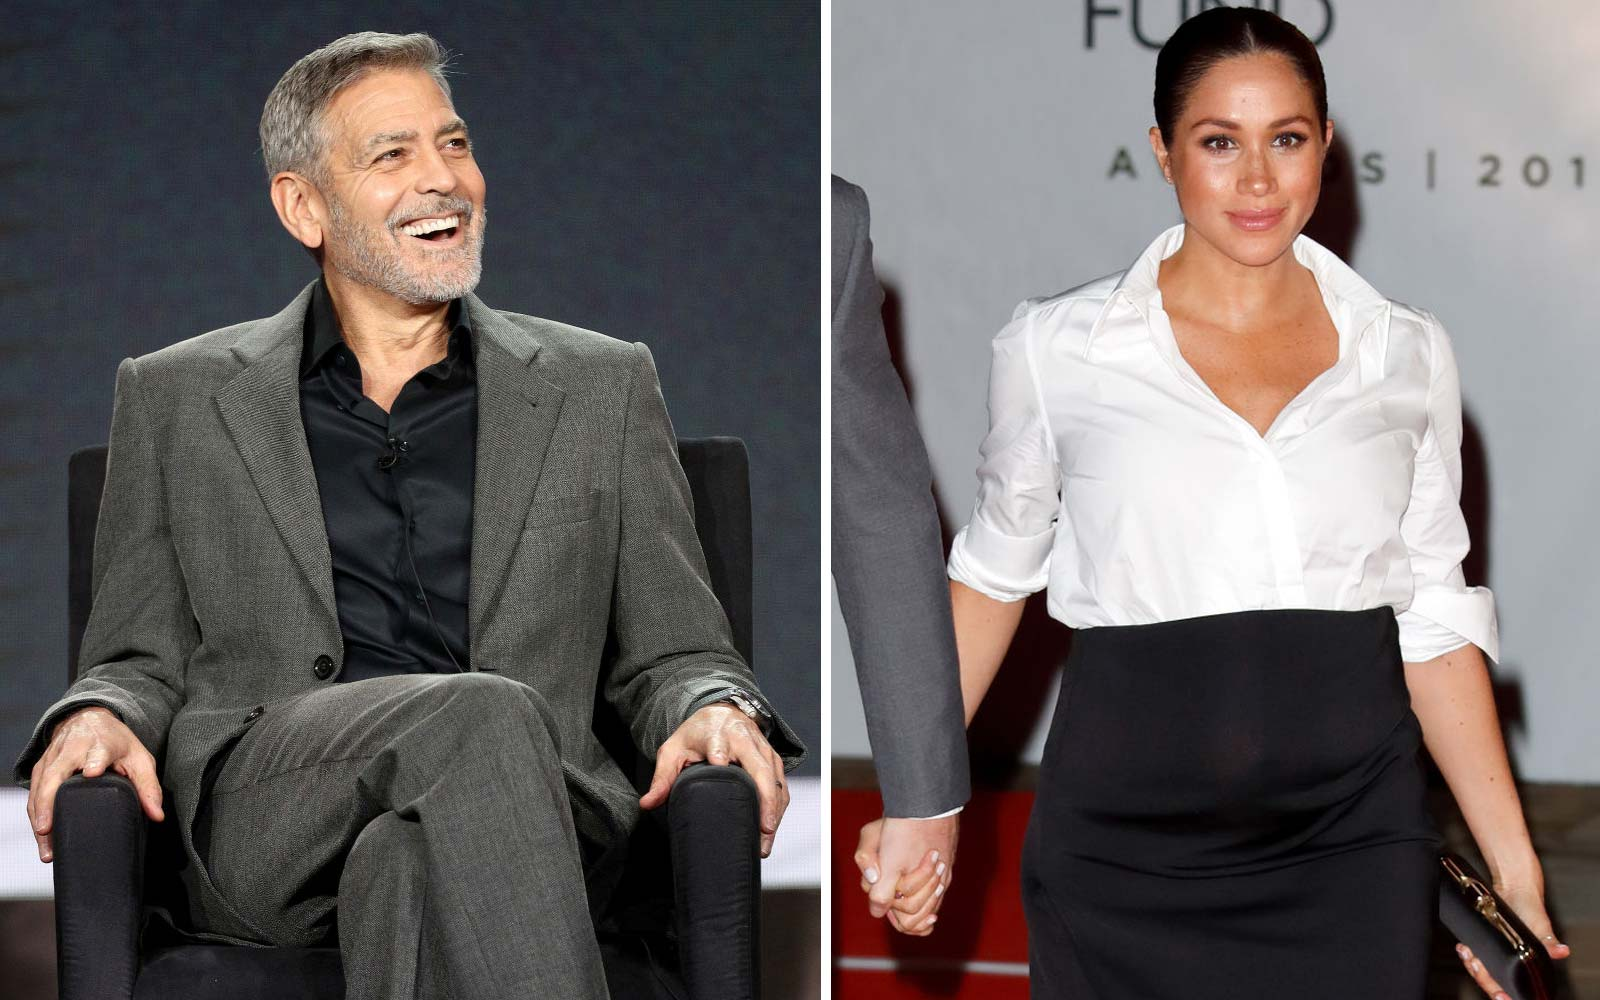 George Clooney Says Meghan Markle Is Being 'Pursued and Vilified' Like Princess Diana: 'It's History Repeating Itself'